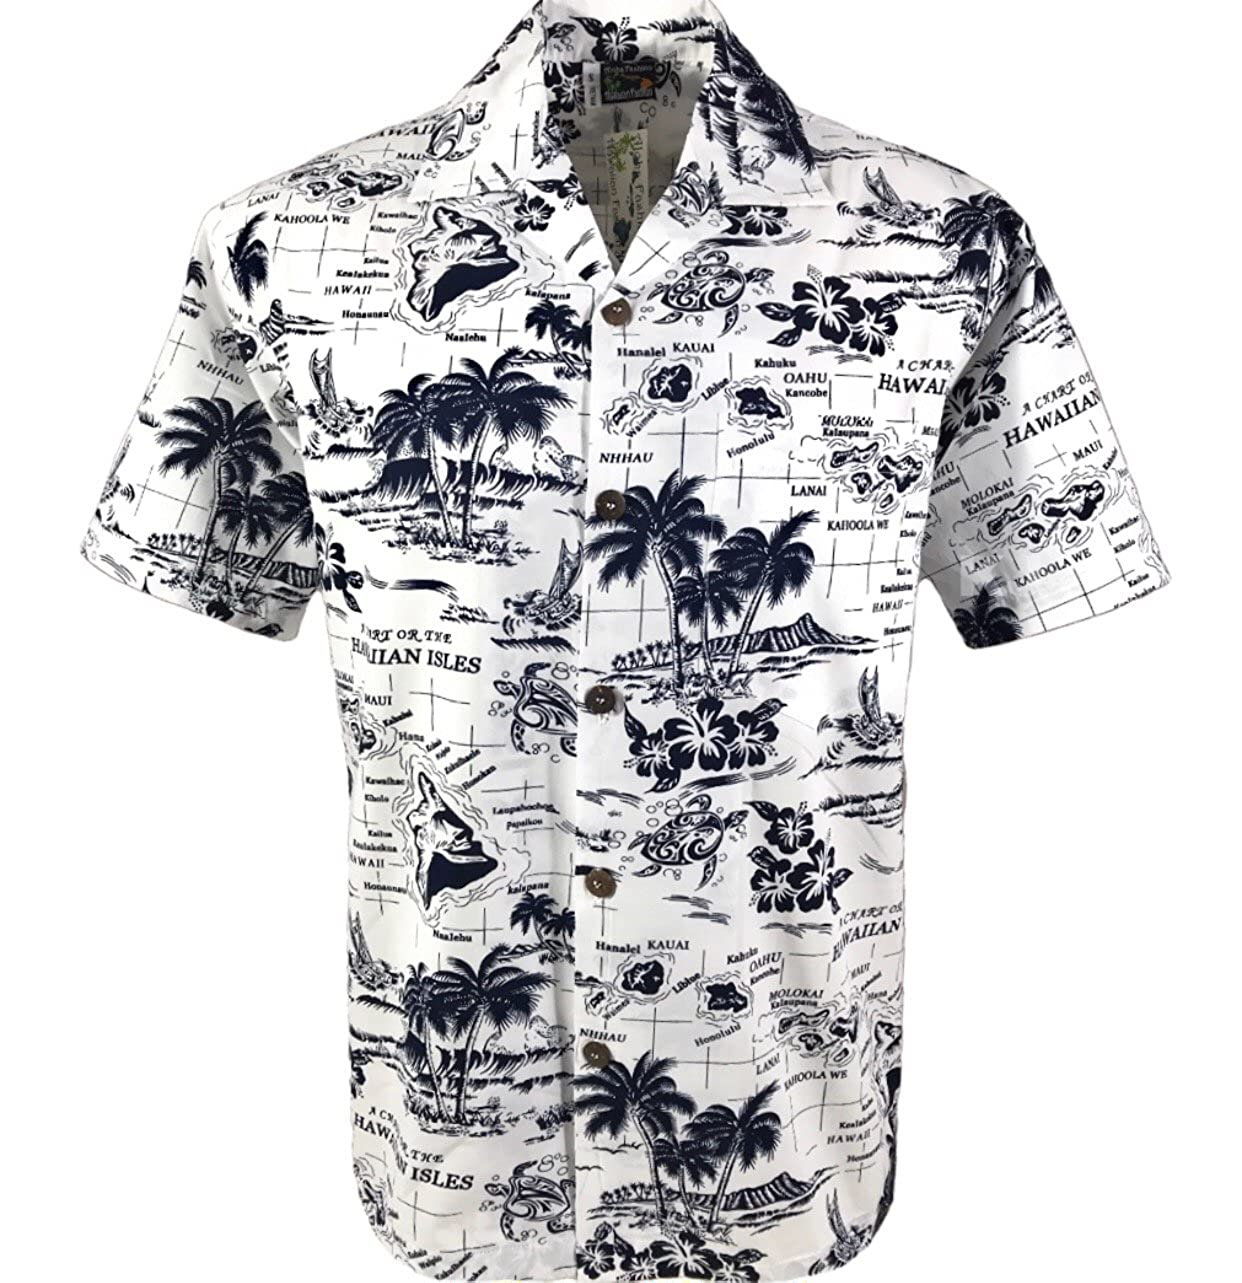 183bc8aca Stylish and Original Hawaiian Shirt Design looks great everywhere you go.  Lightweight, High Quality Fabric and Relaxed Fit will keep you cool and ...